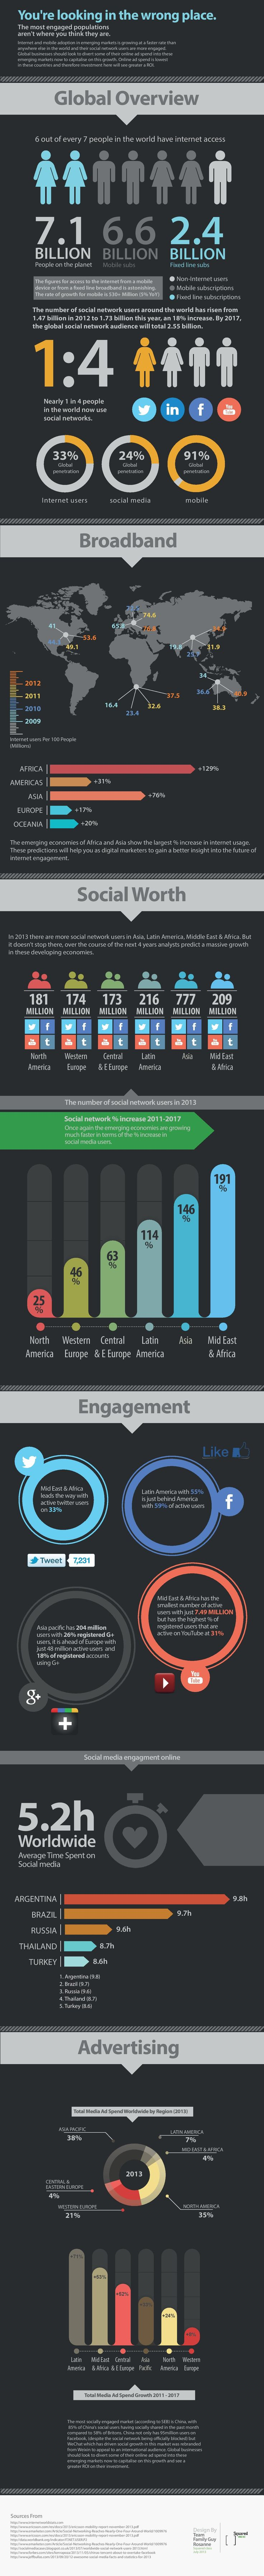 Global Overview Of Internet, Mobile And Social Media Engagement And Usage